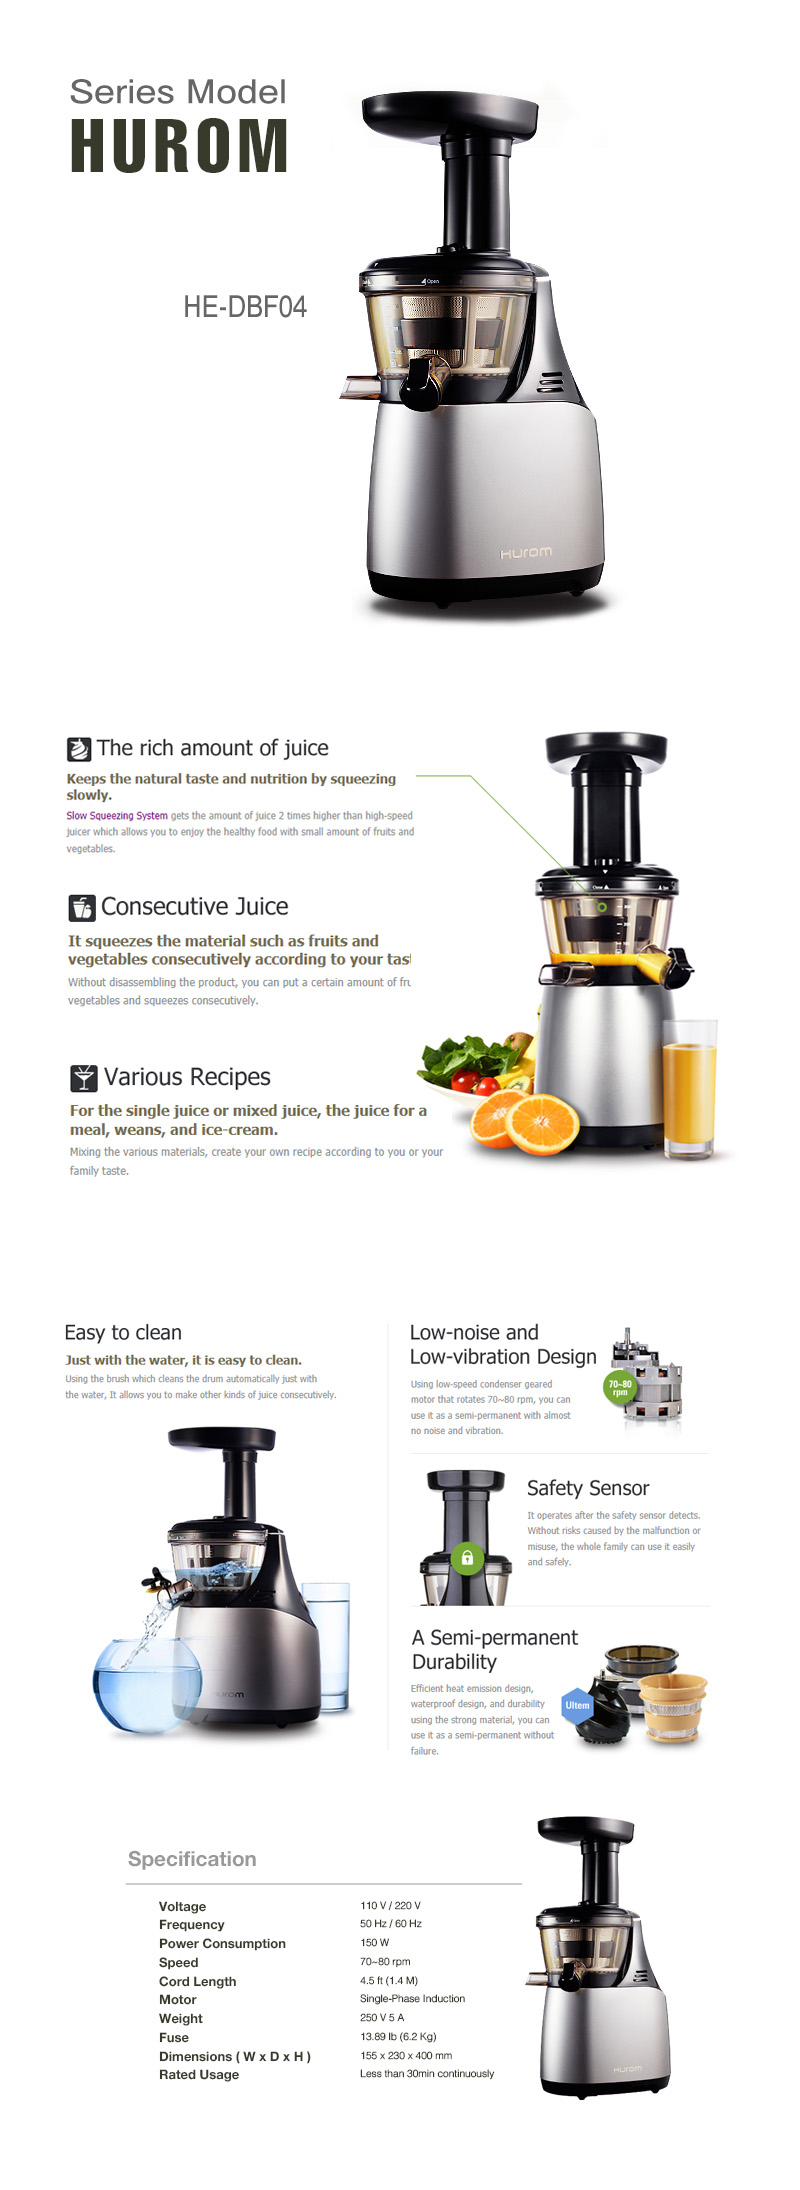 Best Slow Juice Extractor : New HUROM HE-DBF04 Slow Juicer Extractor Fruit vegetable Citrus + Free Express eBay